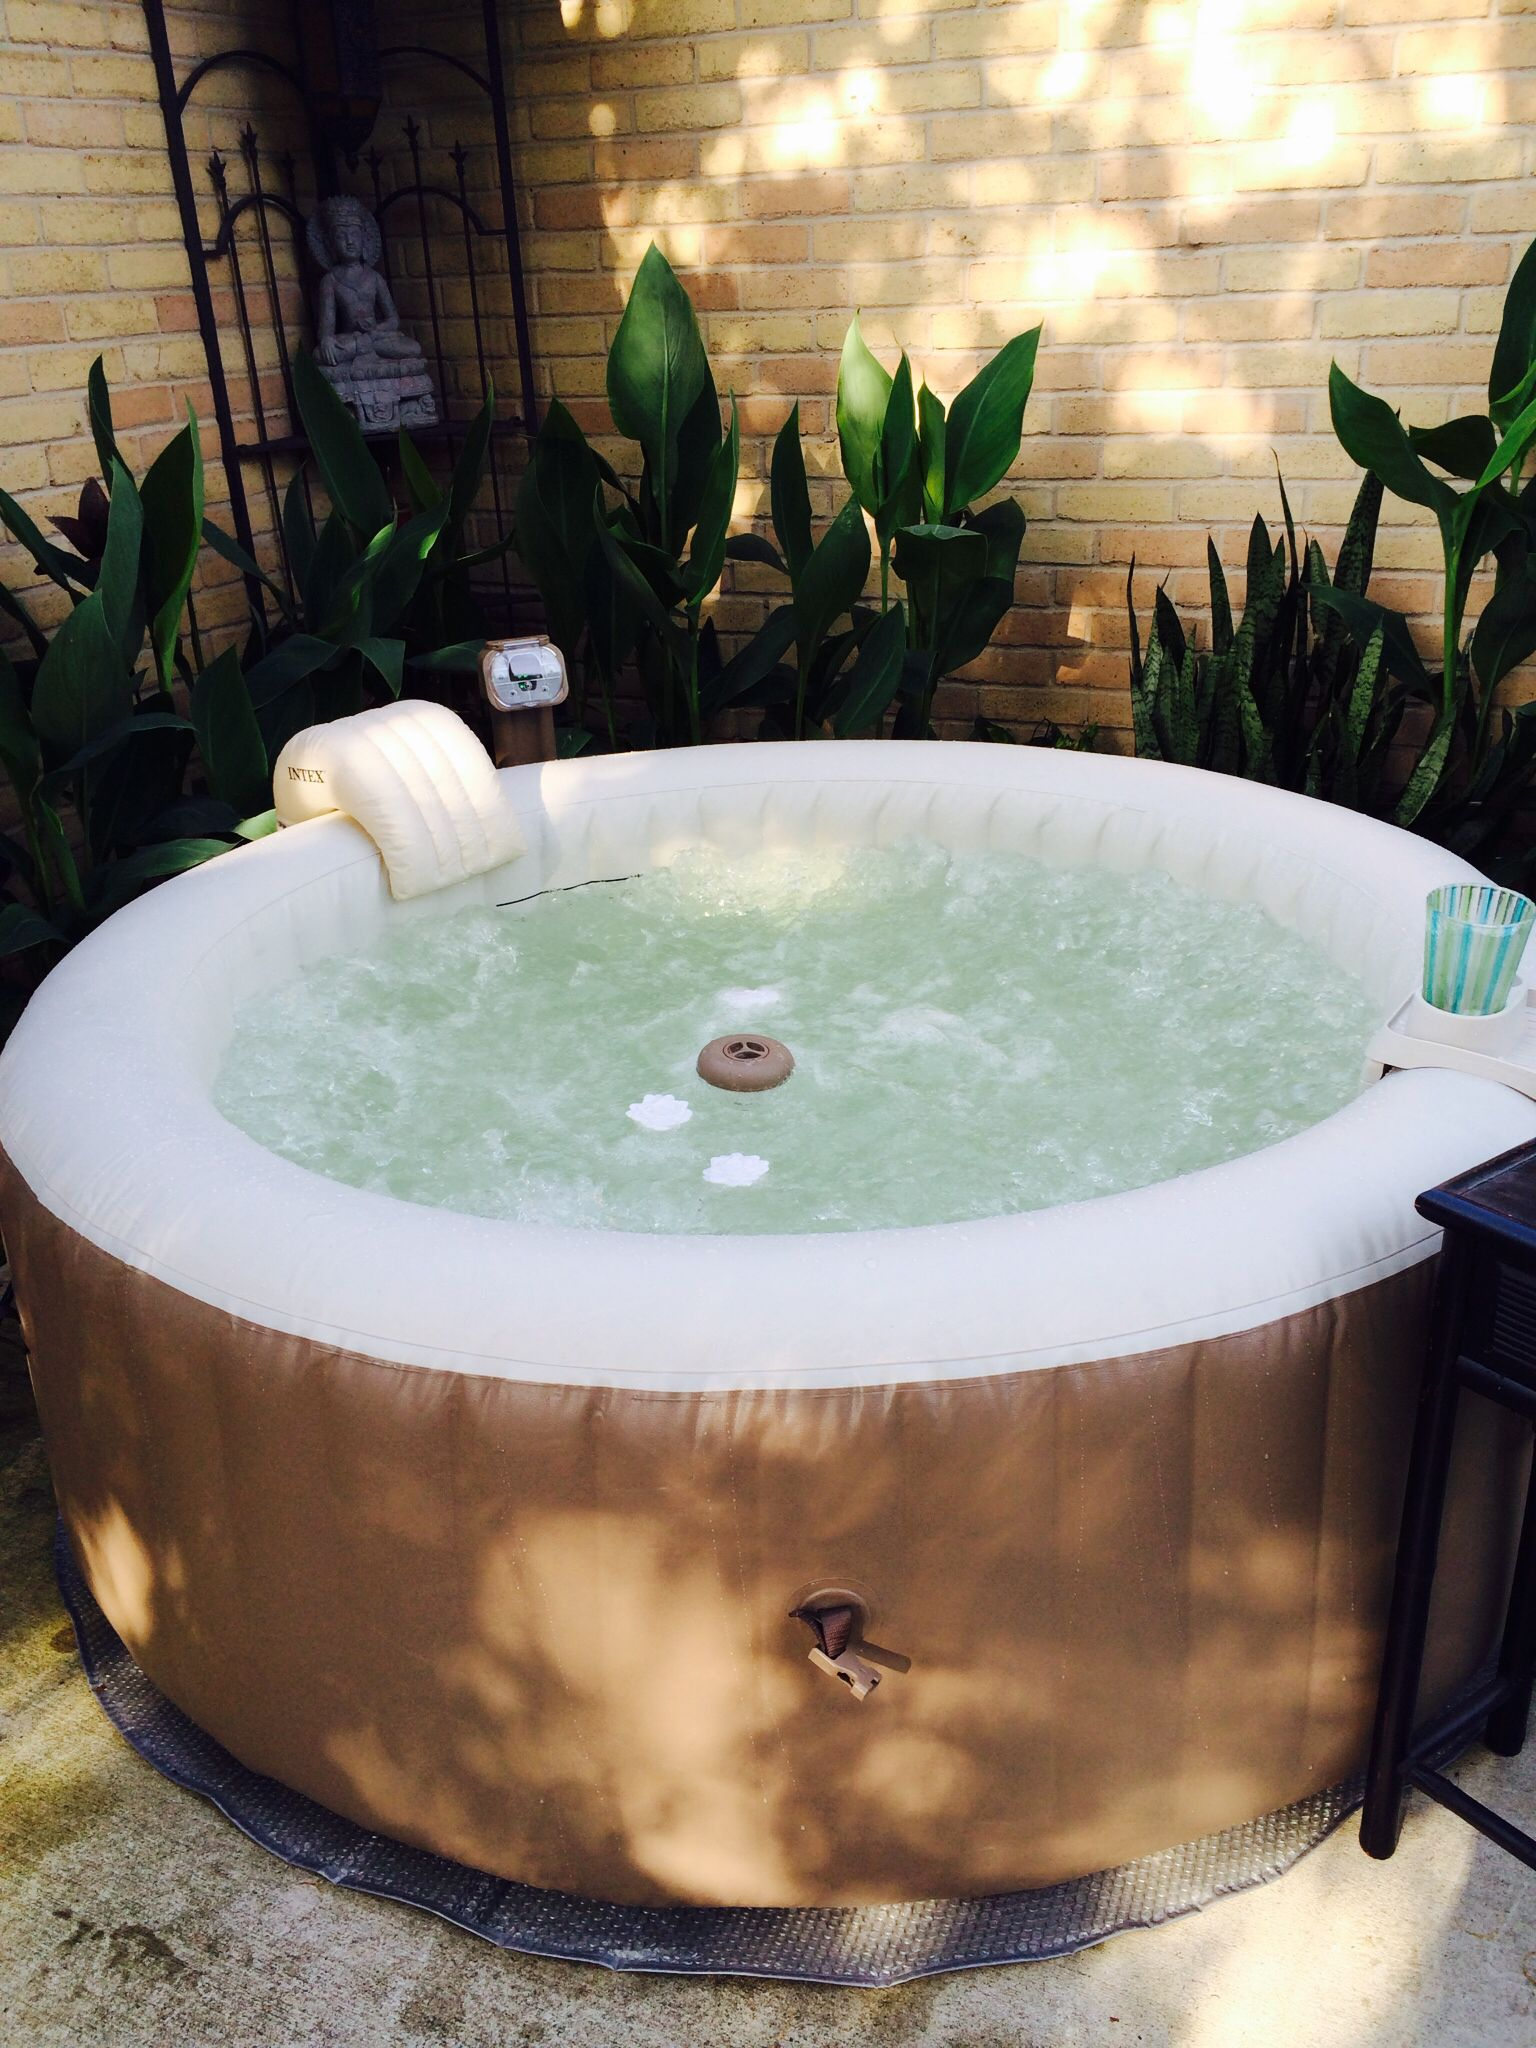 intex spa pool in backyard perfect for your porch for some